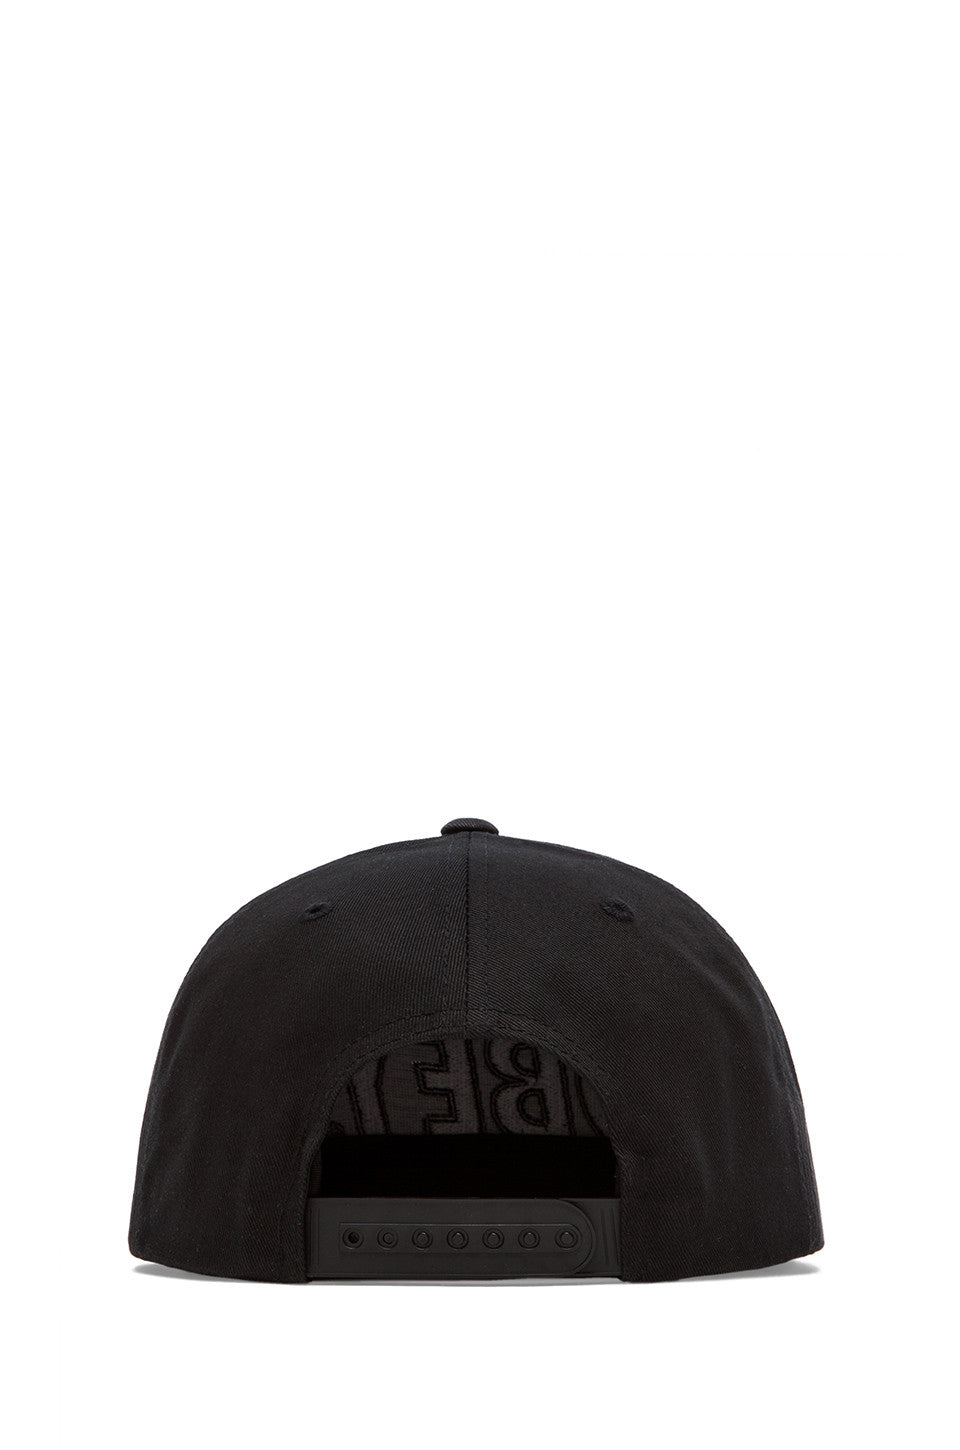 Obey Black Grey Snap Back Caps New Era Fifty Official Authorized